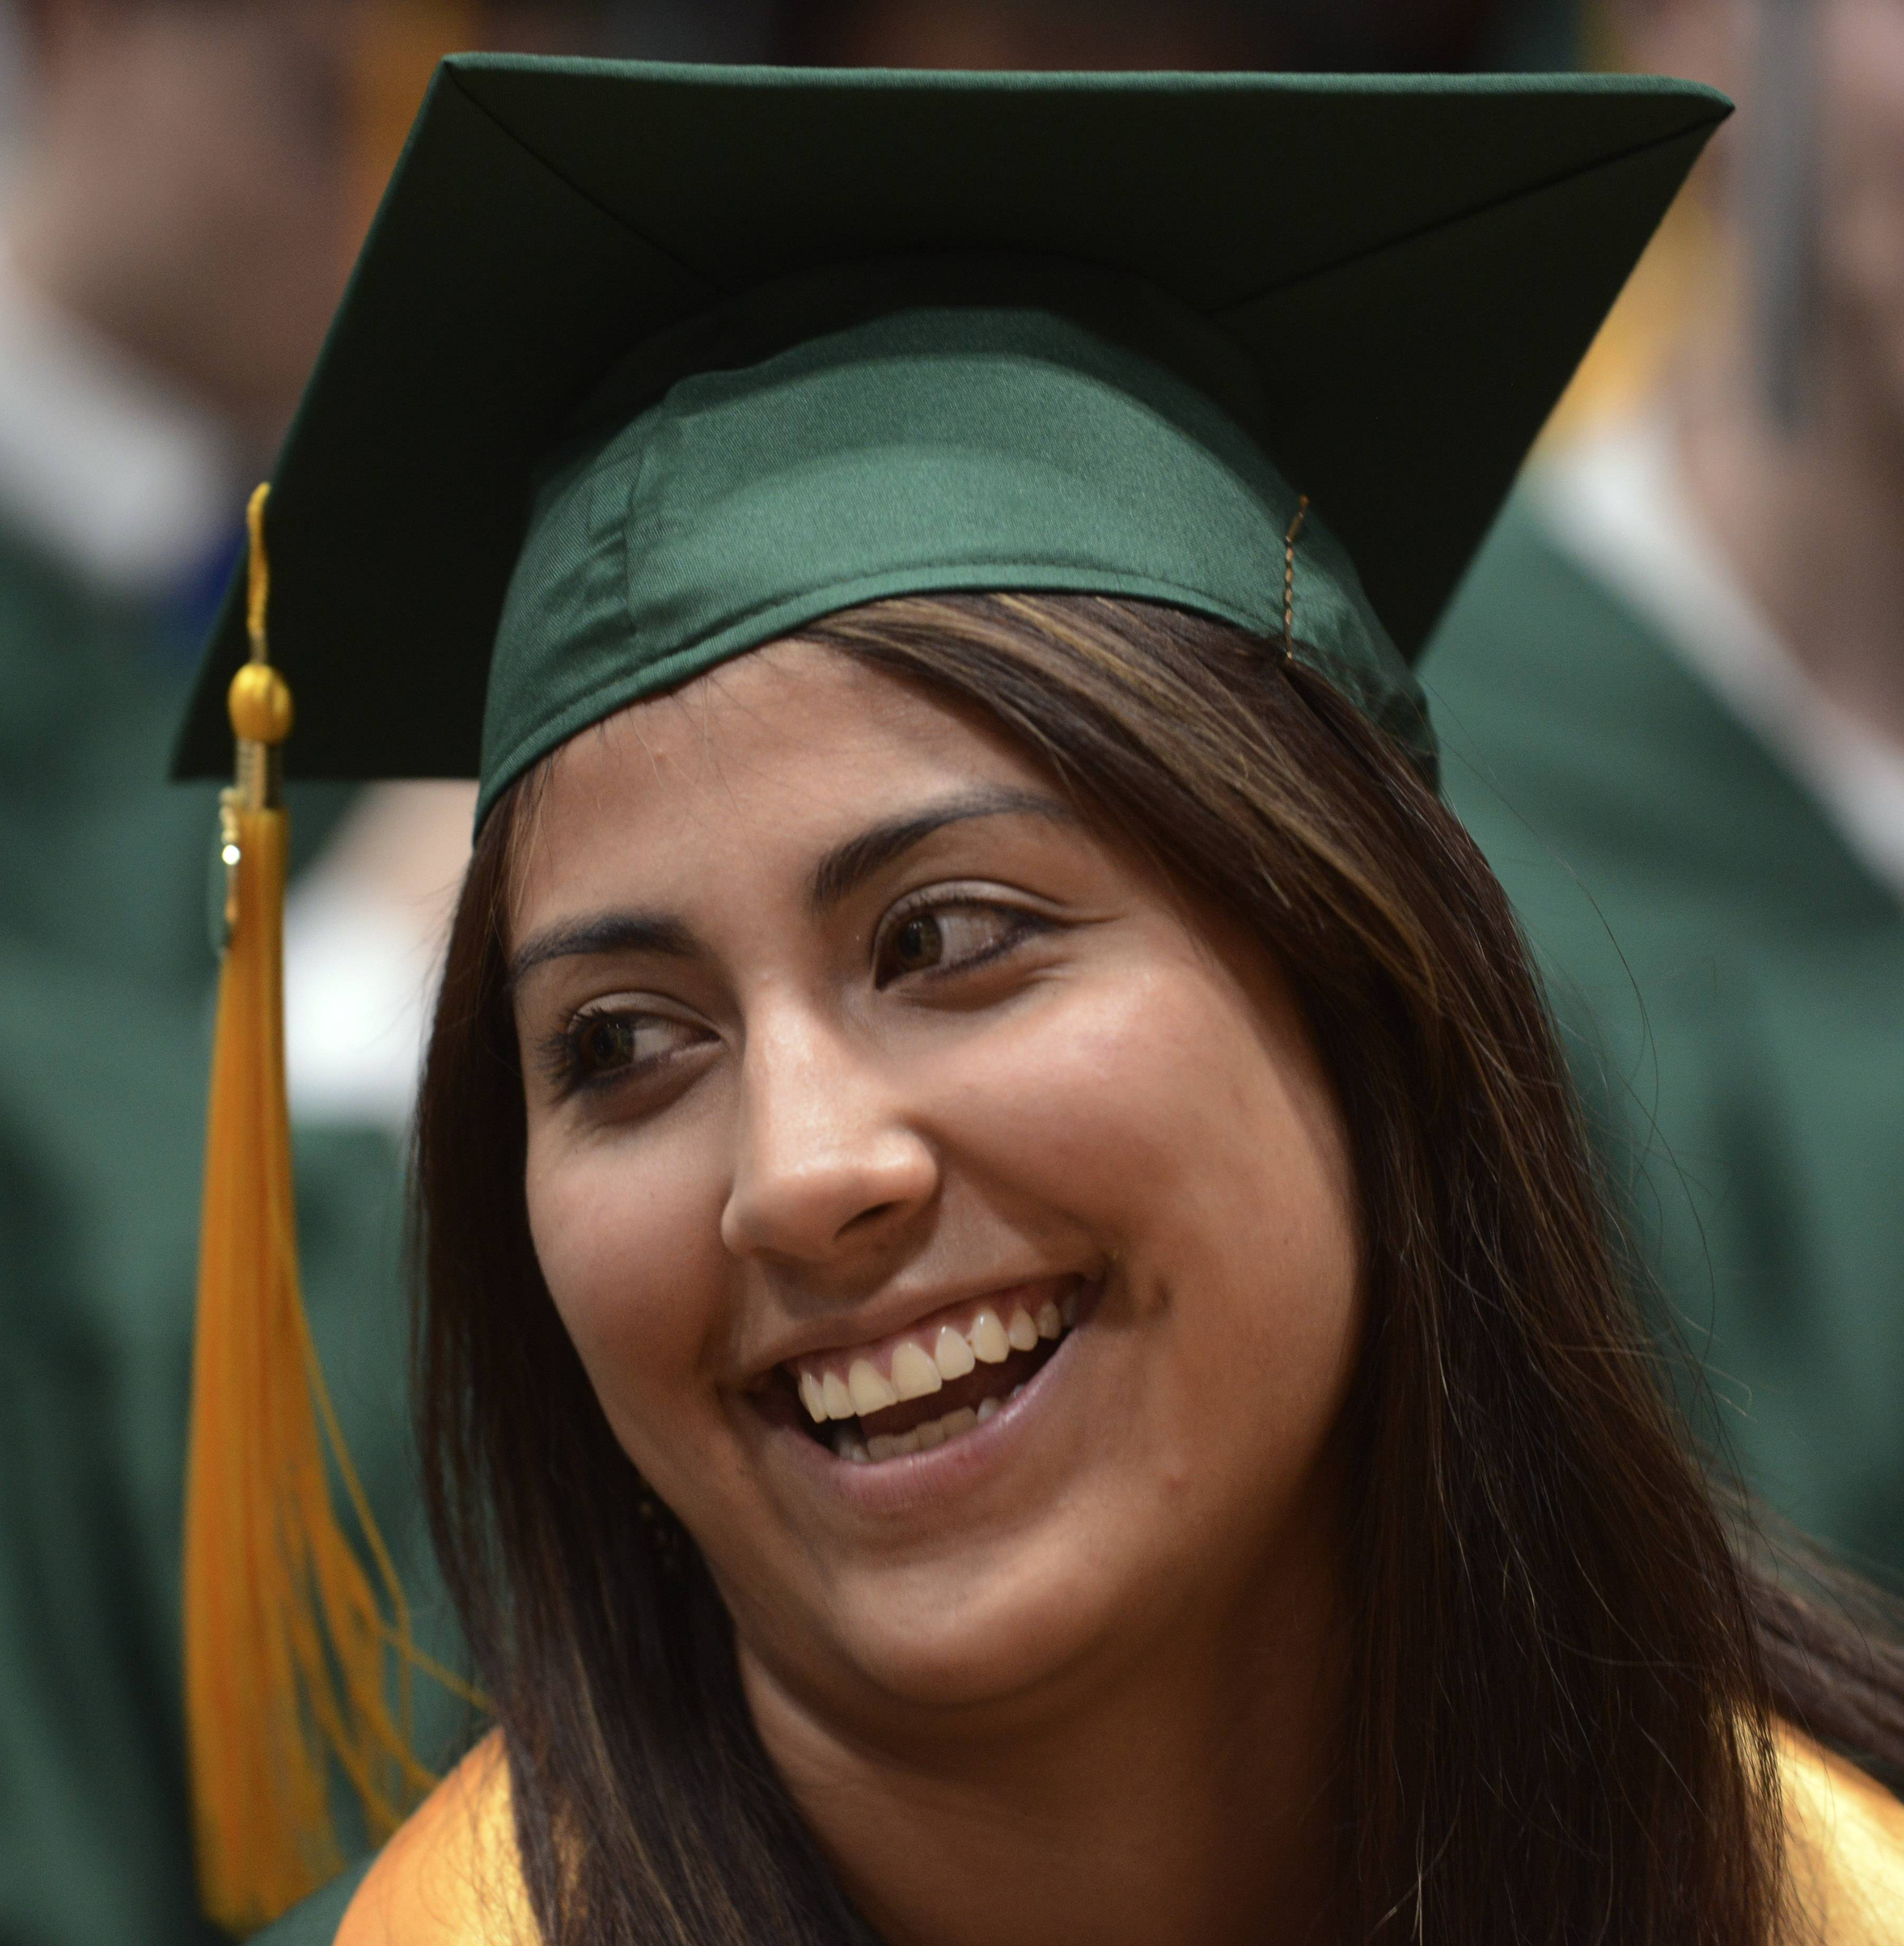 Maria Rice of Des Plaines chats with classmates before the Oakton Community College graduation ceremony Tuesday in Des Plaines